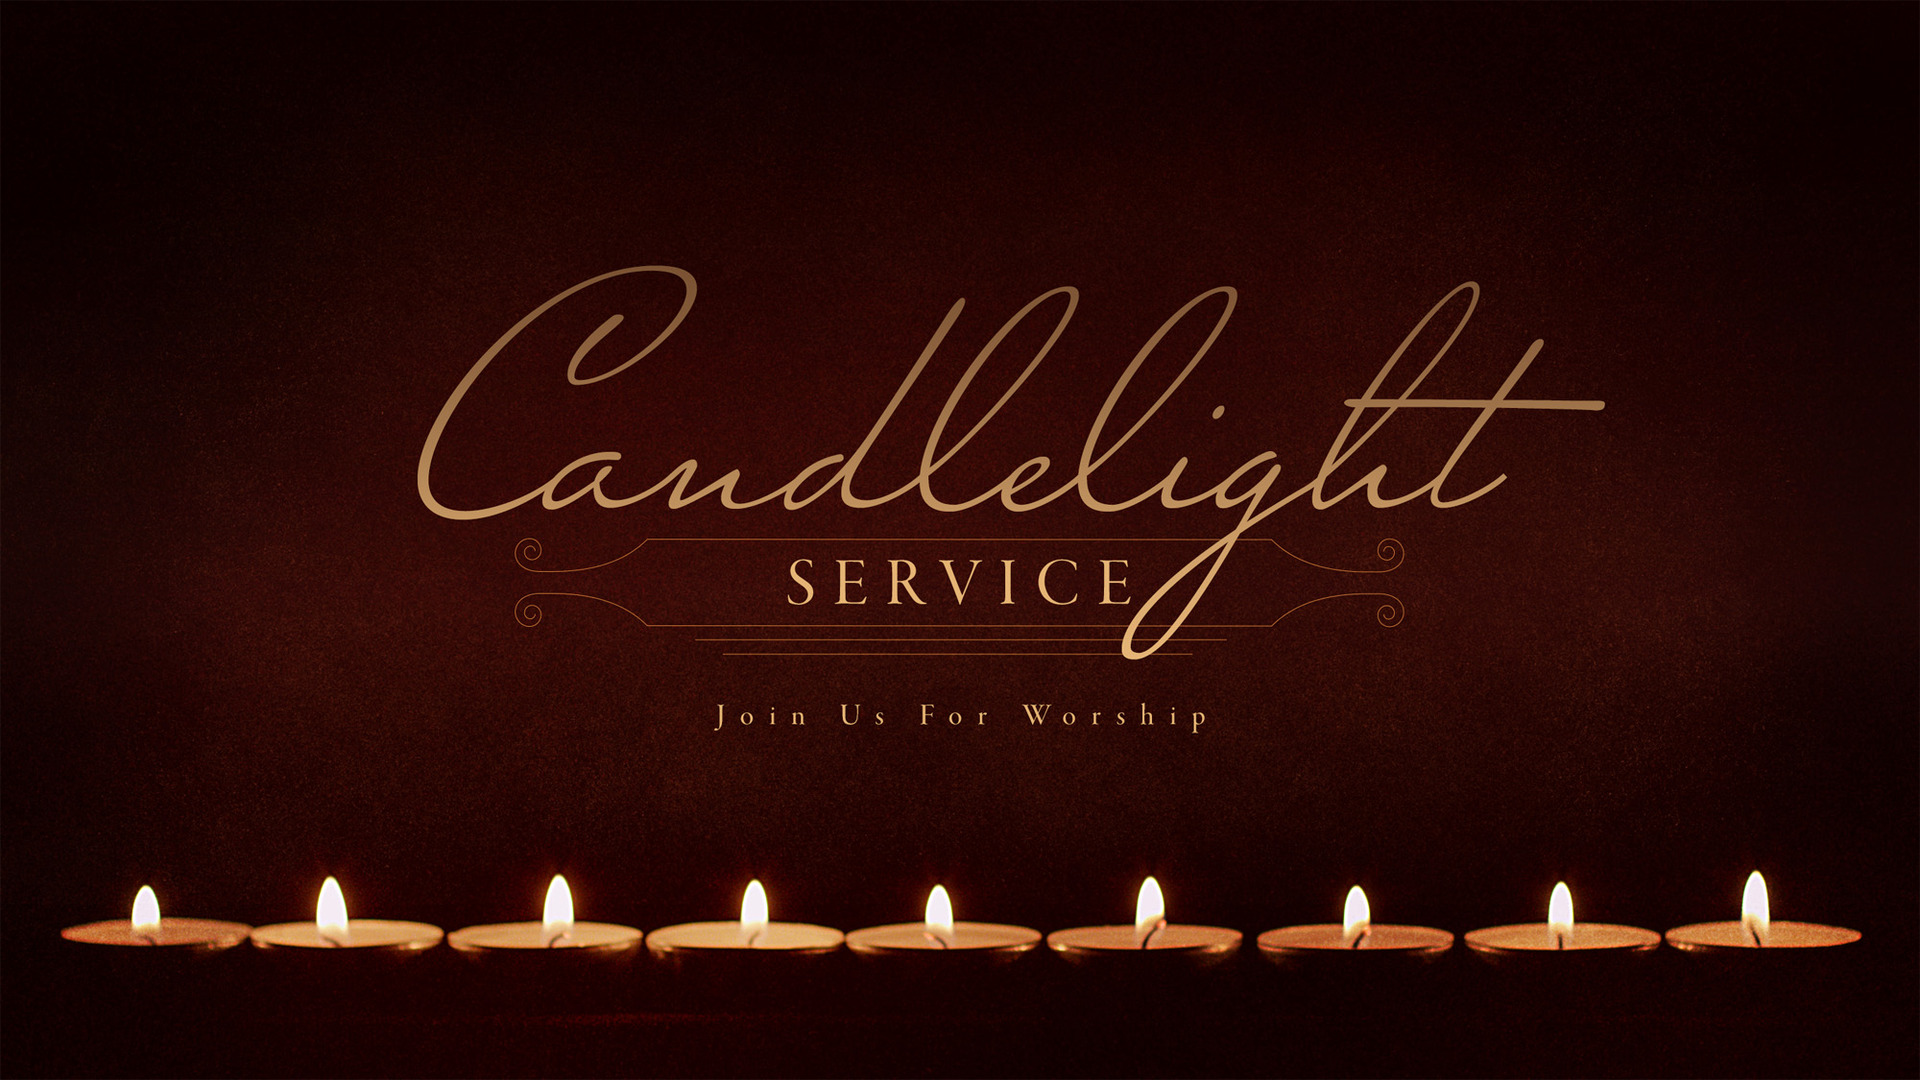 soft_candlelight_candlelight_service-title-1-Wide 16x9